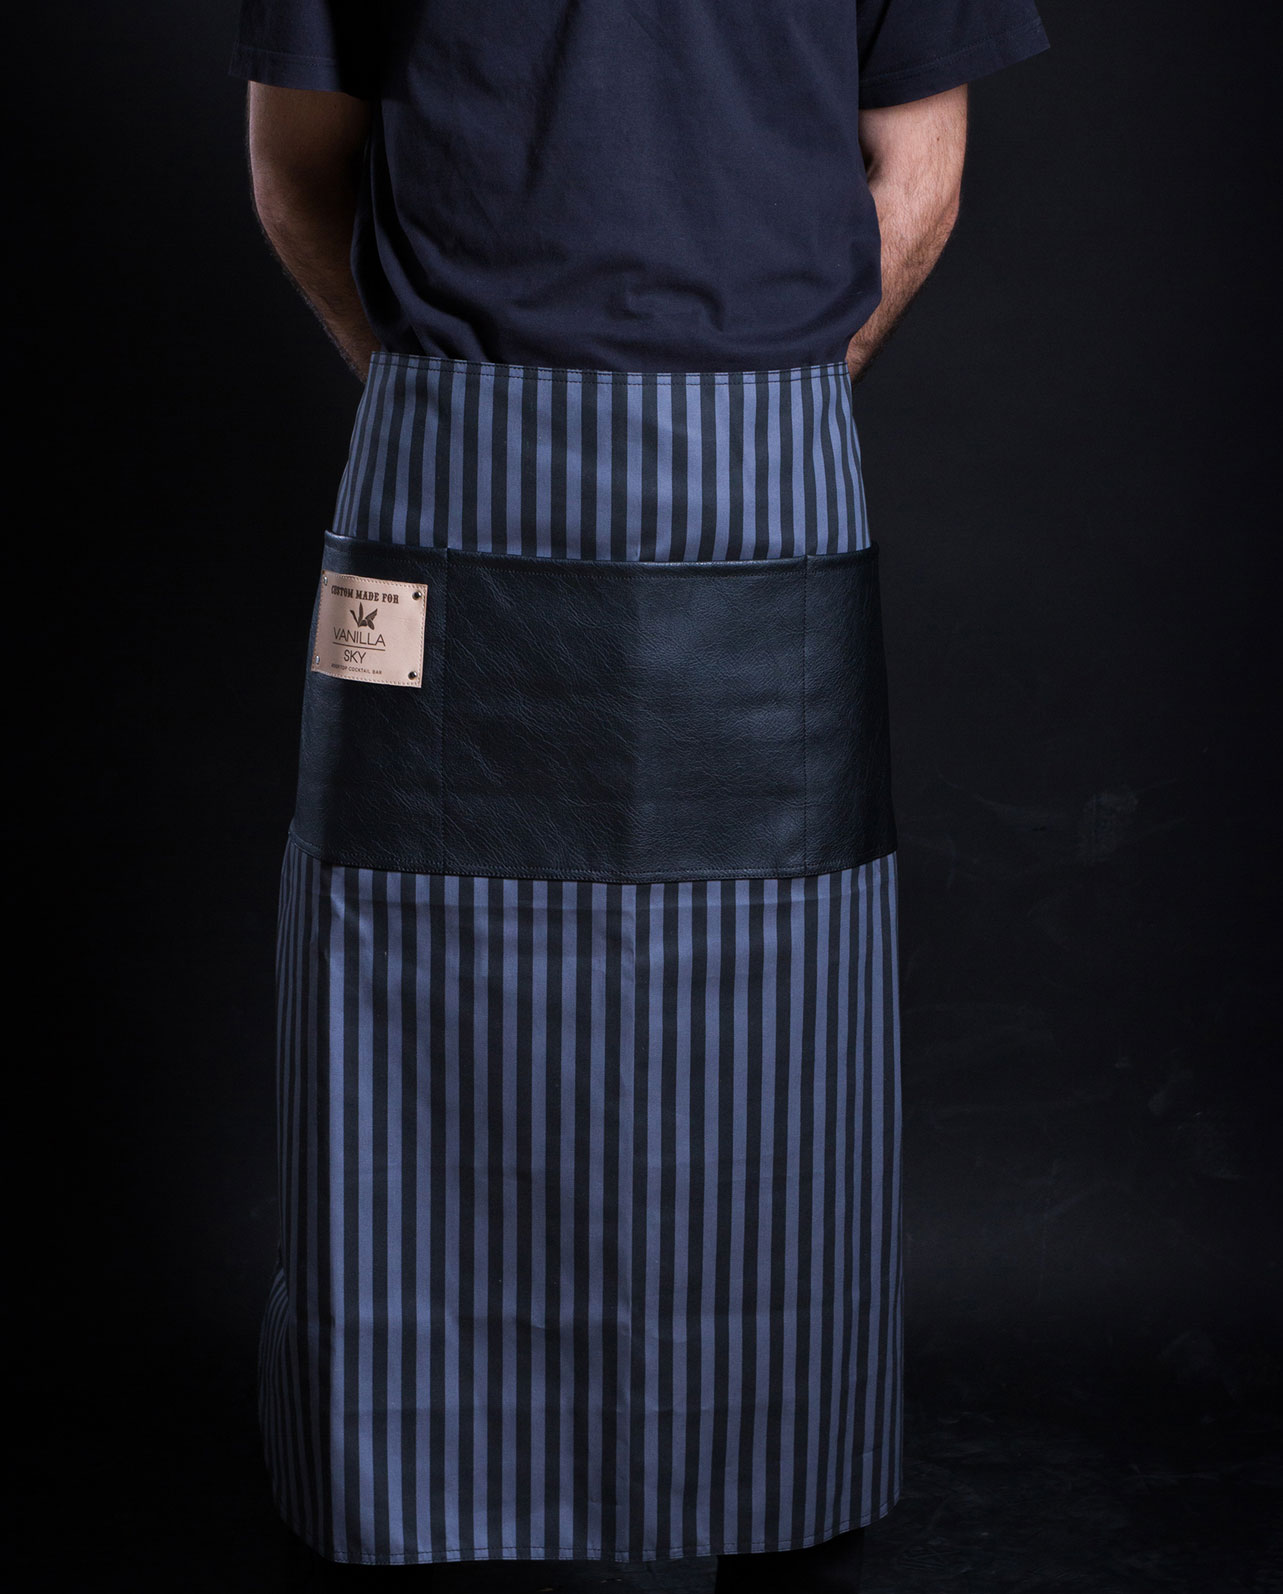 Fancy Gents Apron Vanilla Sky Maxi